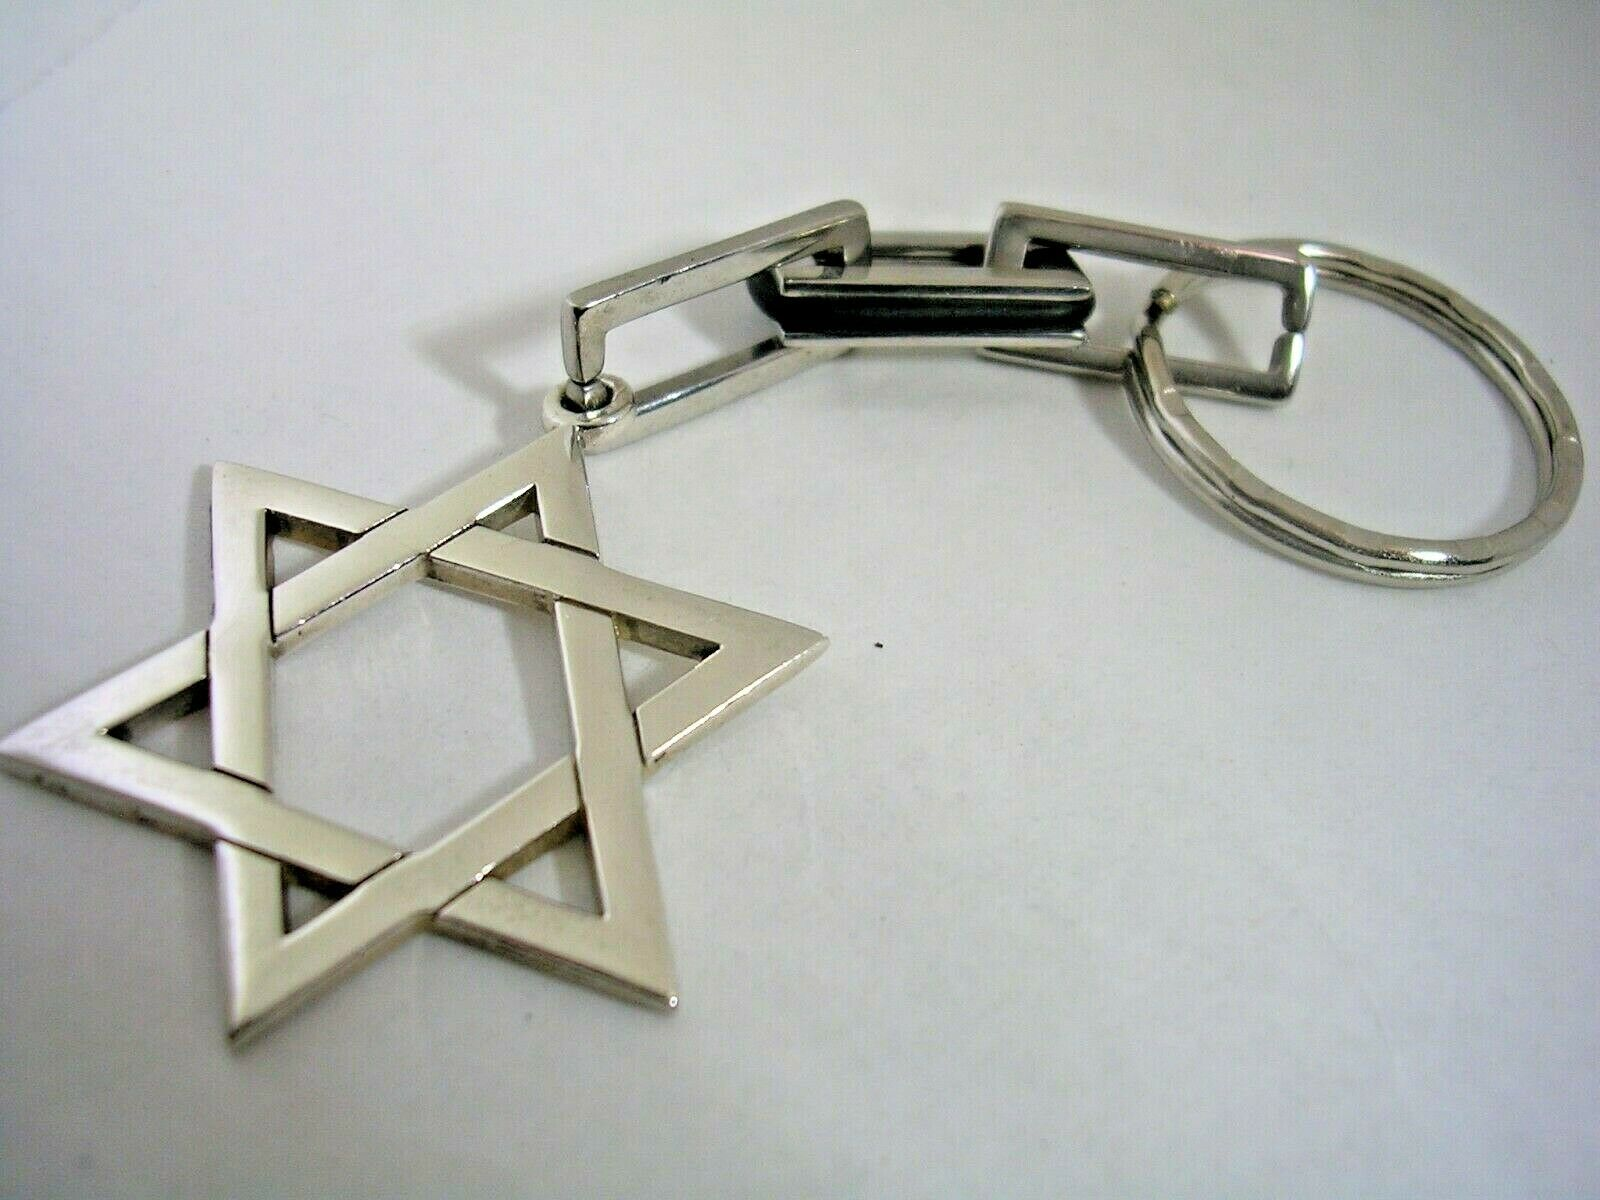 Primary image for JEWISH STAR KEY CHAIN WITH A HIGH POLISHED FINISH IN STERLING SILVER